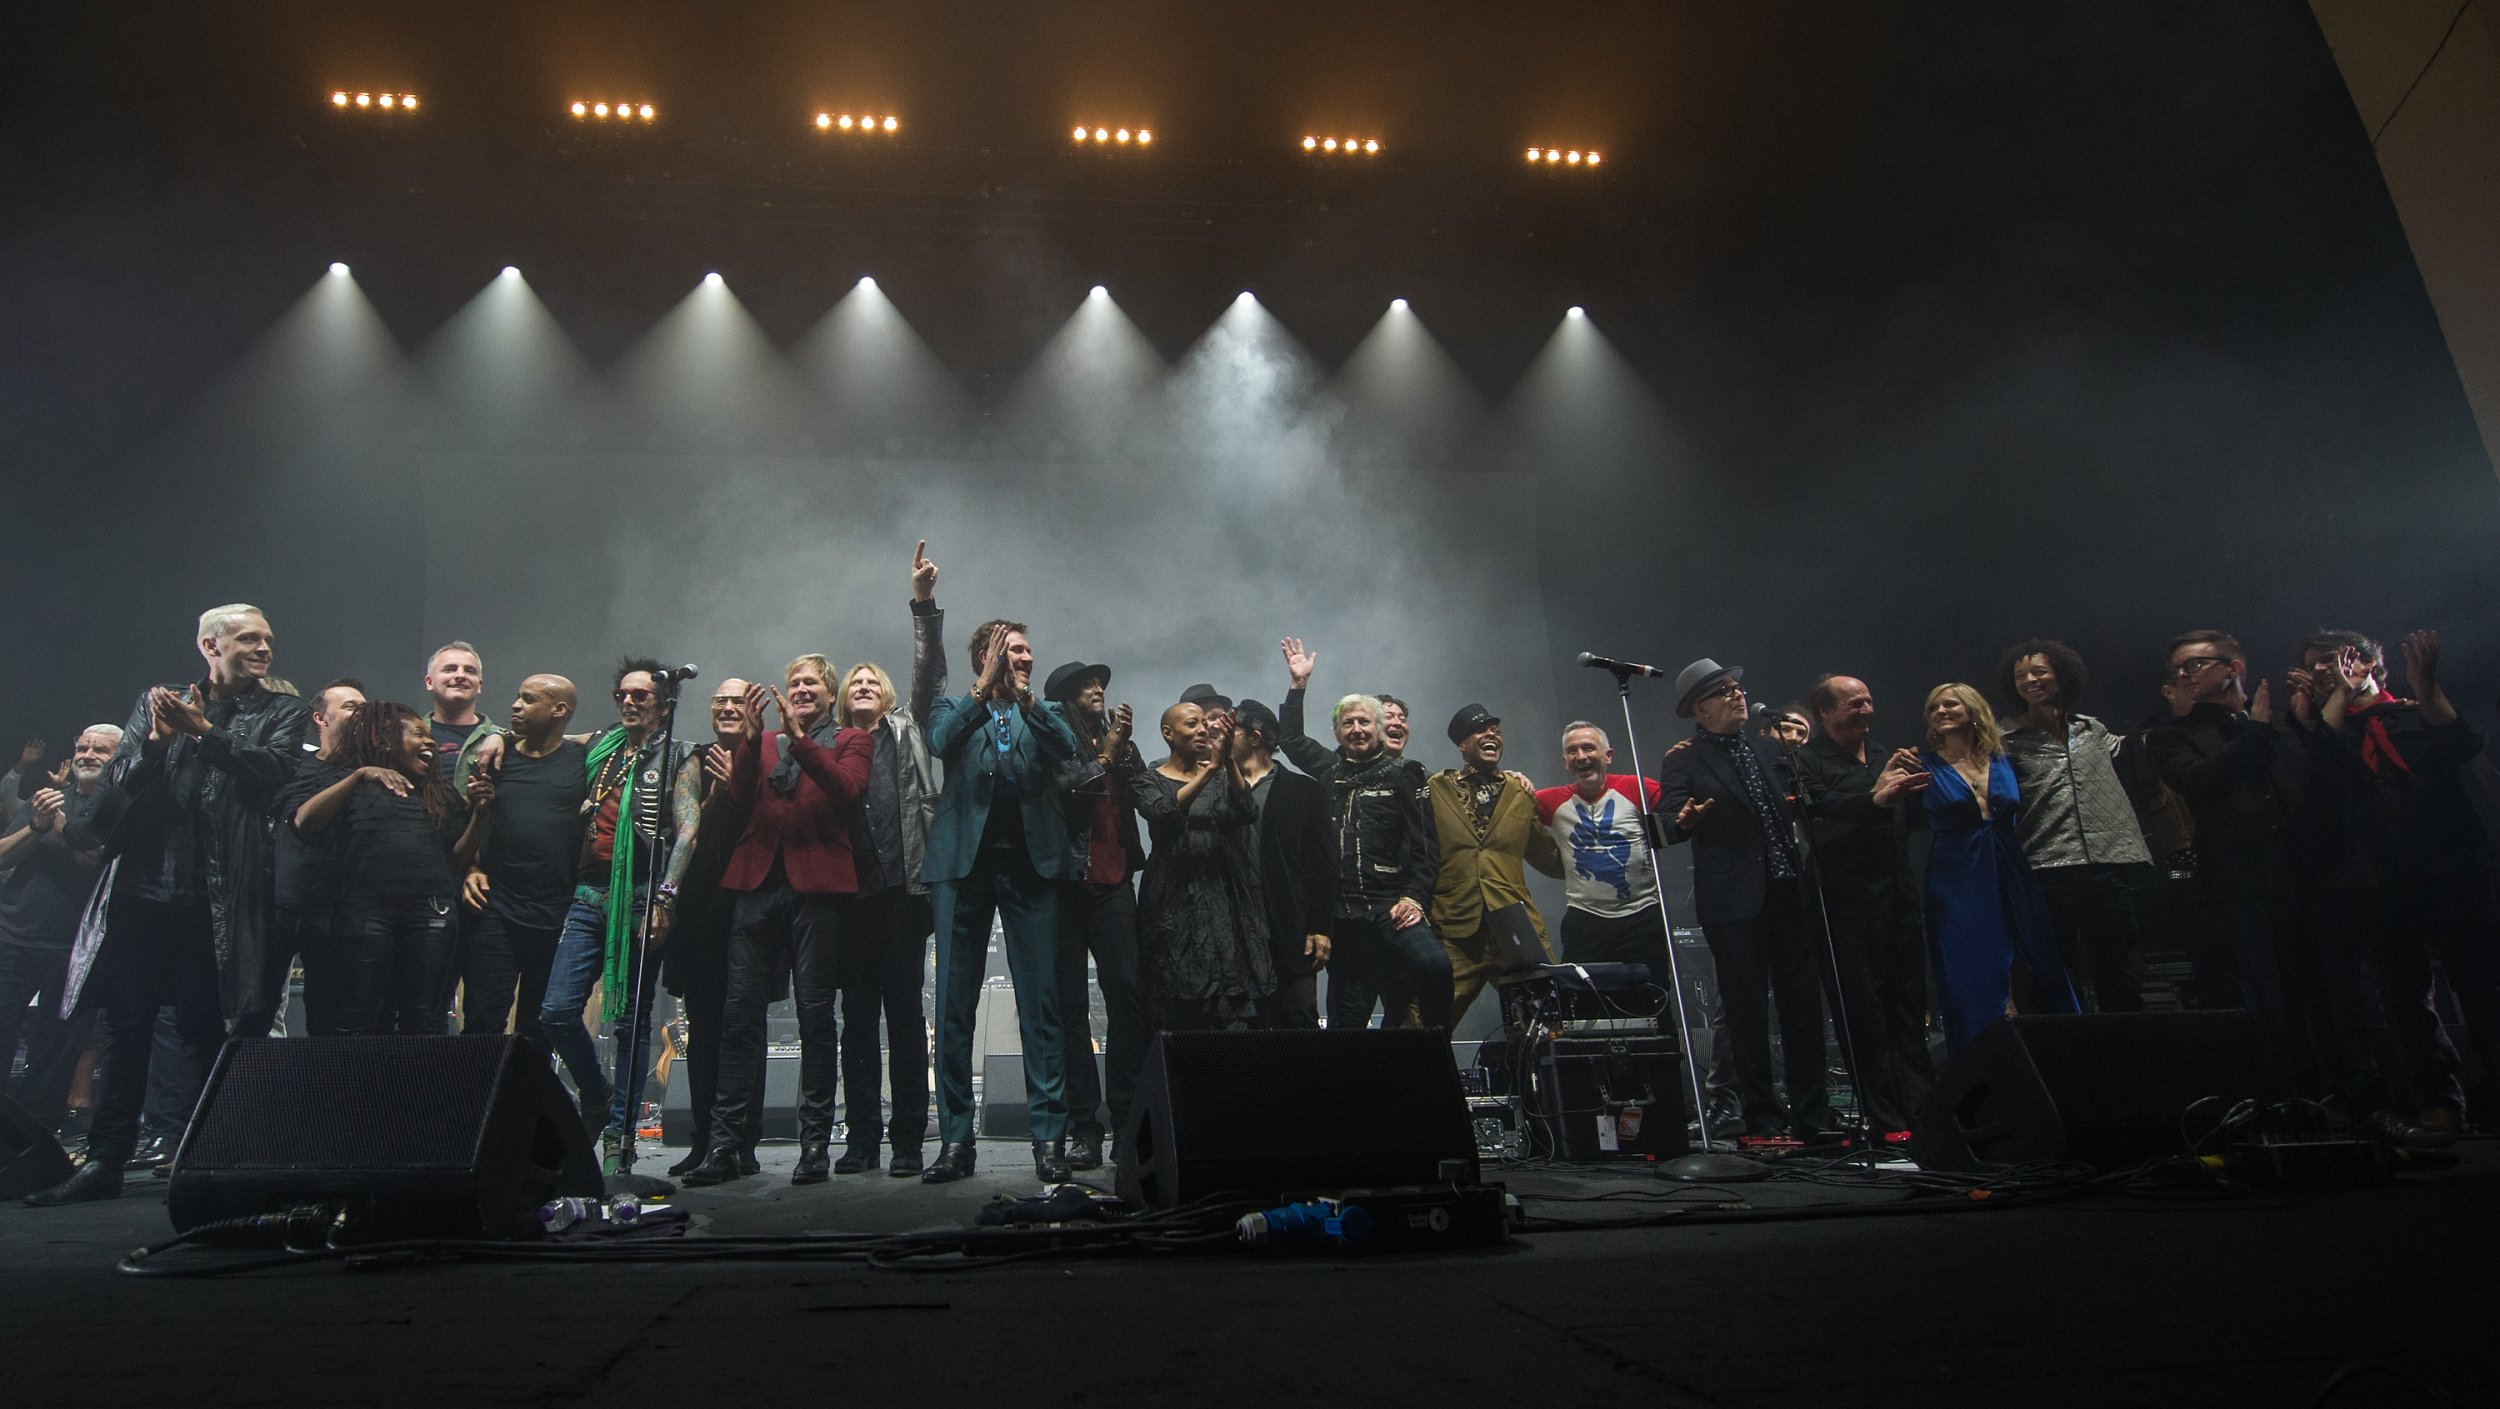 LONDON, ENGLAND - JANUARY 08:(EXCLUSIVE COVERAGE) The Performers close the show at a special concert Celebrating David Bowie With Gary Oldman & Friends on what wold have been Bowie's 70th birthday at O2 Academy Brixton on January 8, 2017 in London, England. (Photo by Brian Rasic/WireImage)